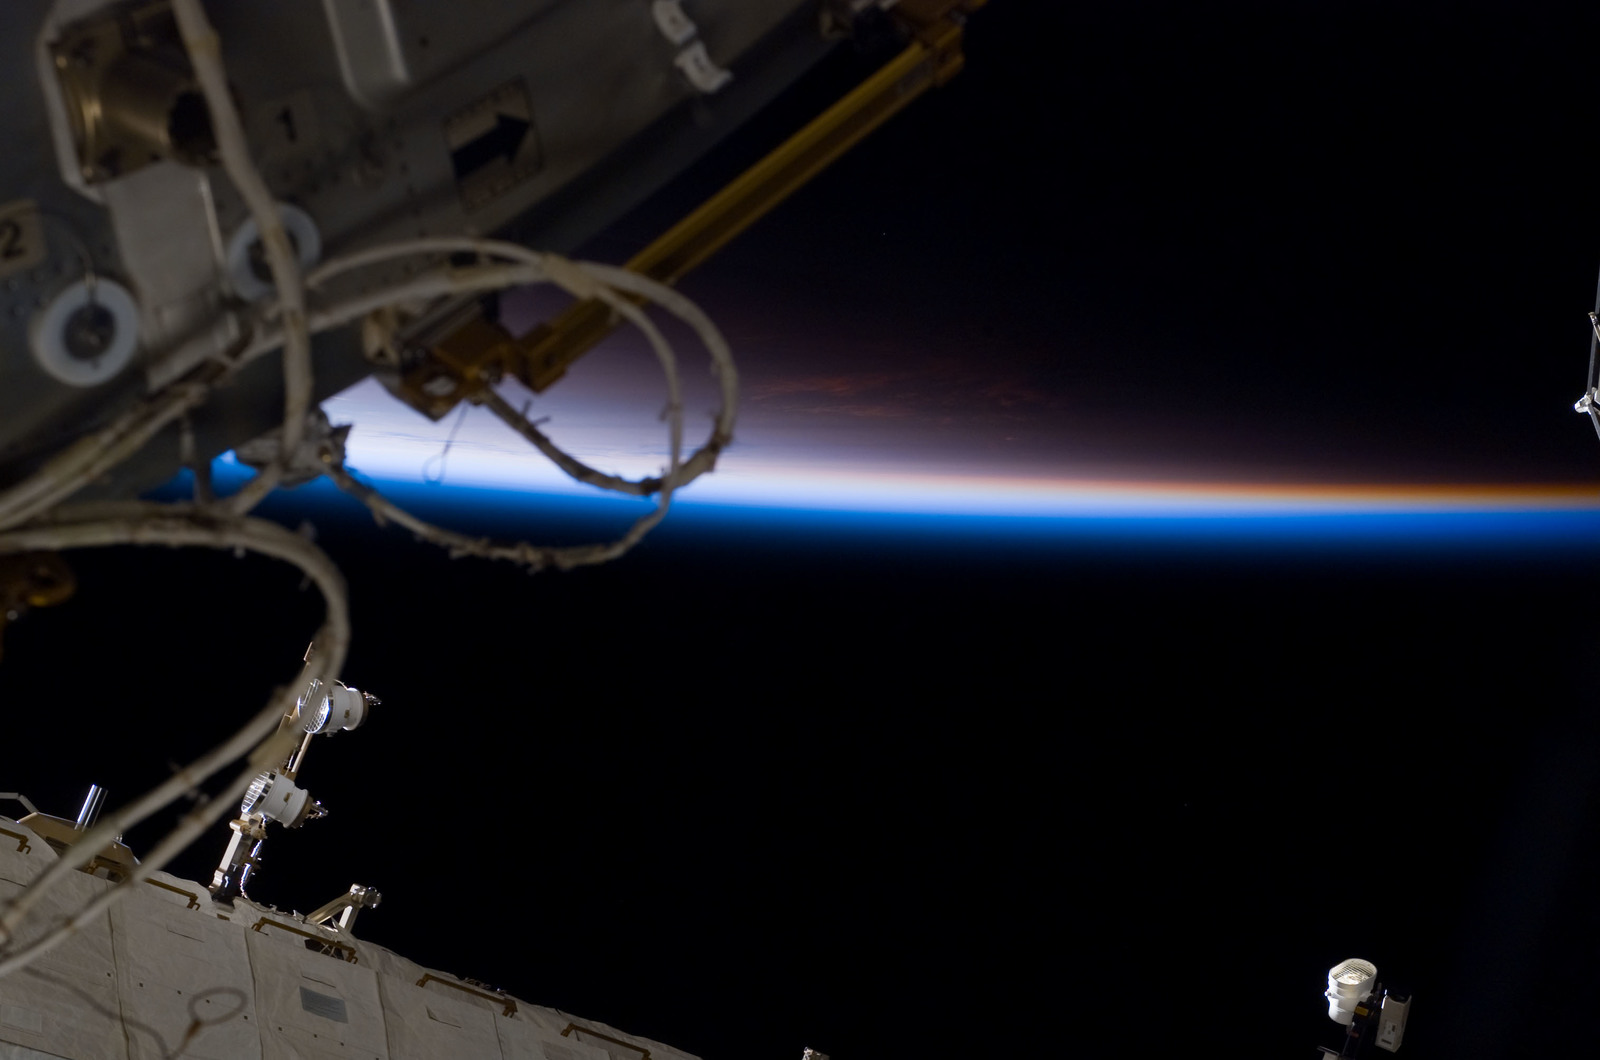 S122E007672 - STS-122 - Node 2 during Expedition 16/STS-122 Joint Operations